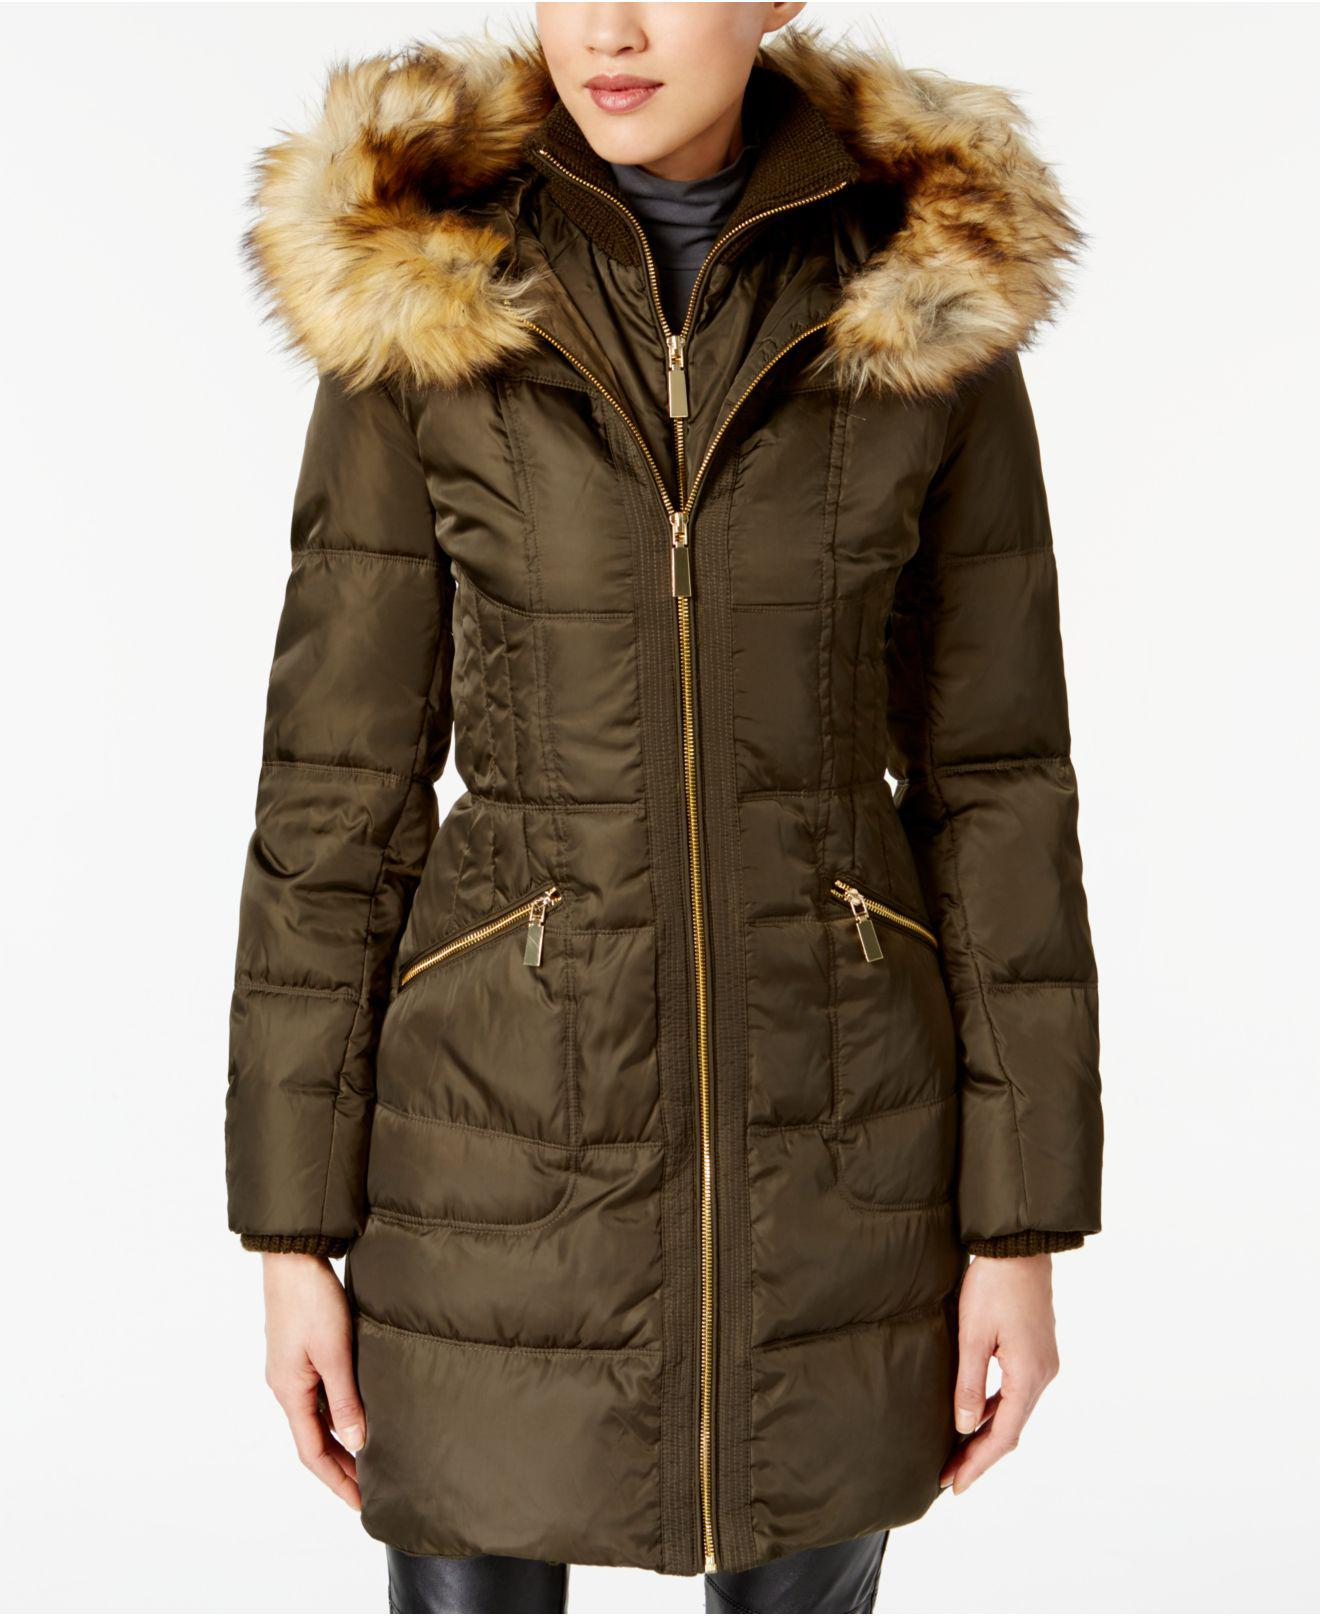 Lyst Vince Camuto Faux Fur Trimmed Hooded Puffer Coat In